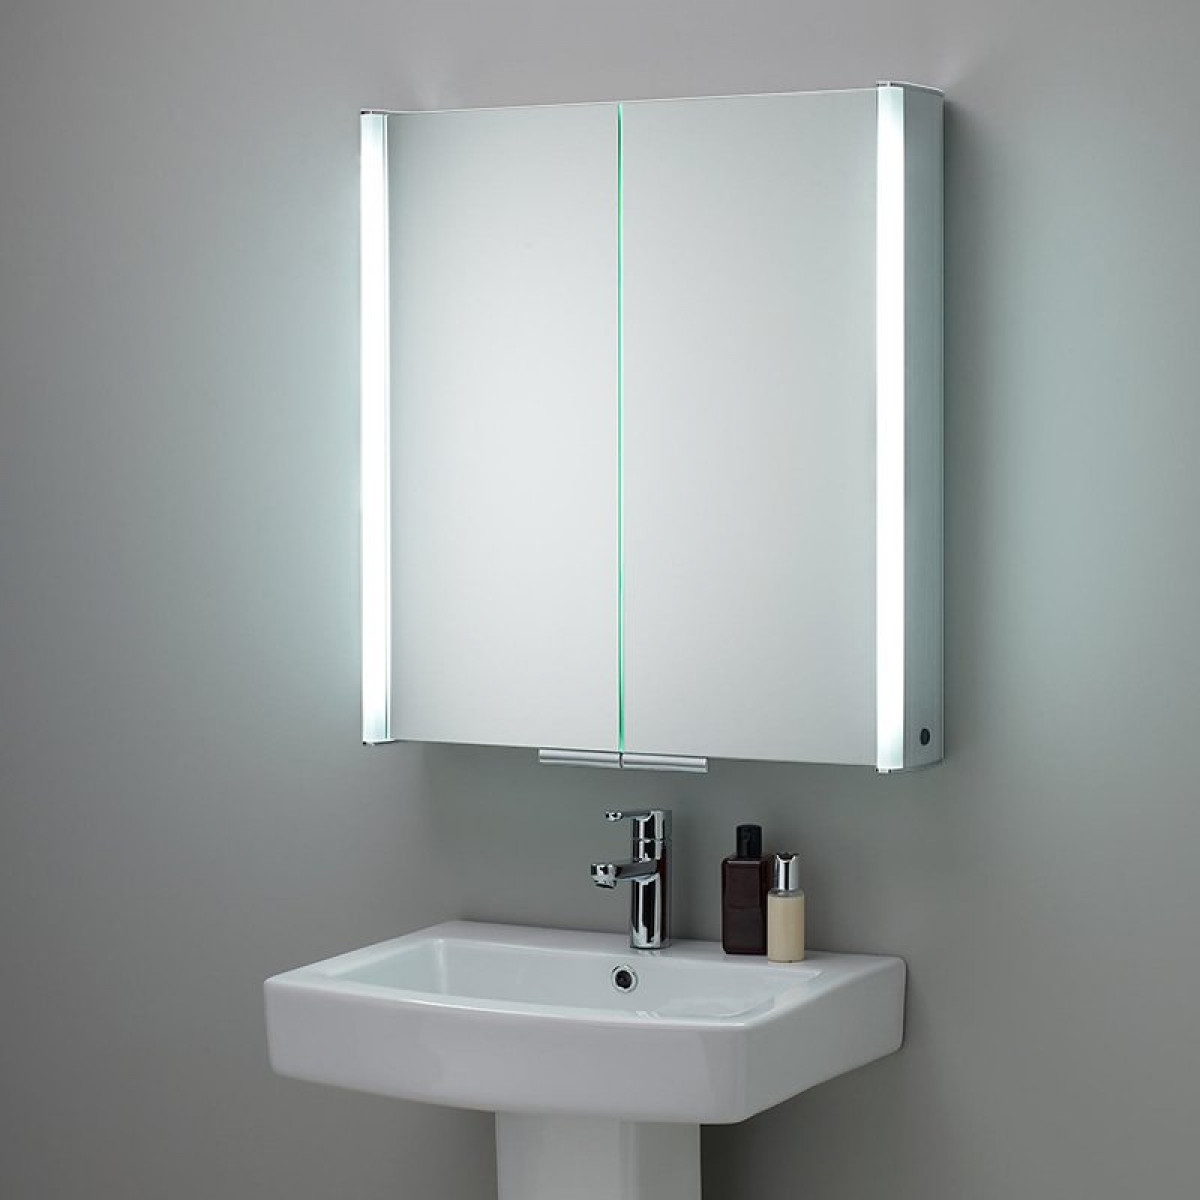 hib cabinets bathroom hib xenon 80 led aluminium illuminated bathroom cabinet 16271